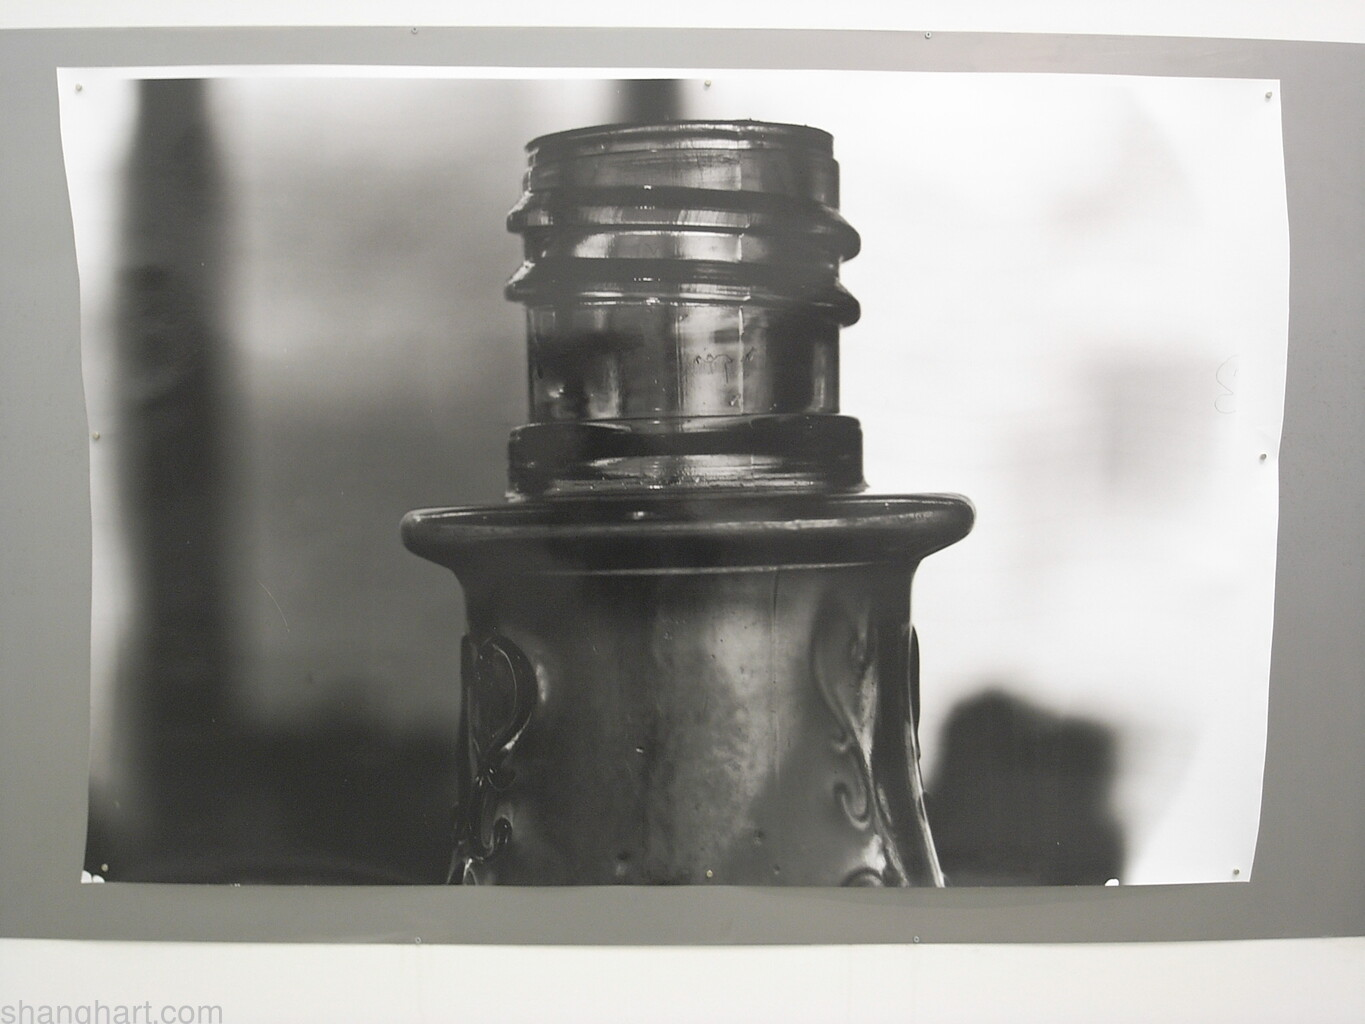 Installation view of the photography work Bottle